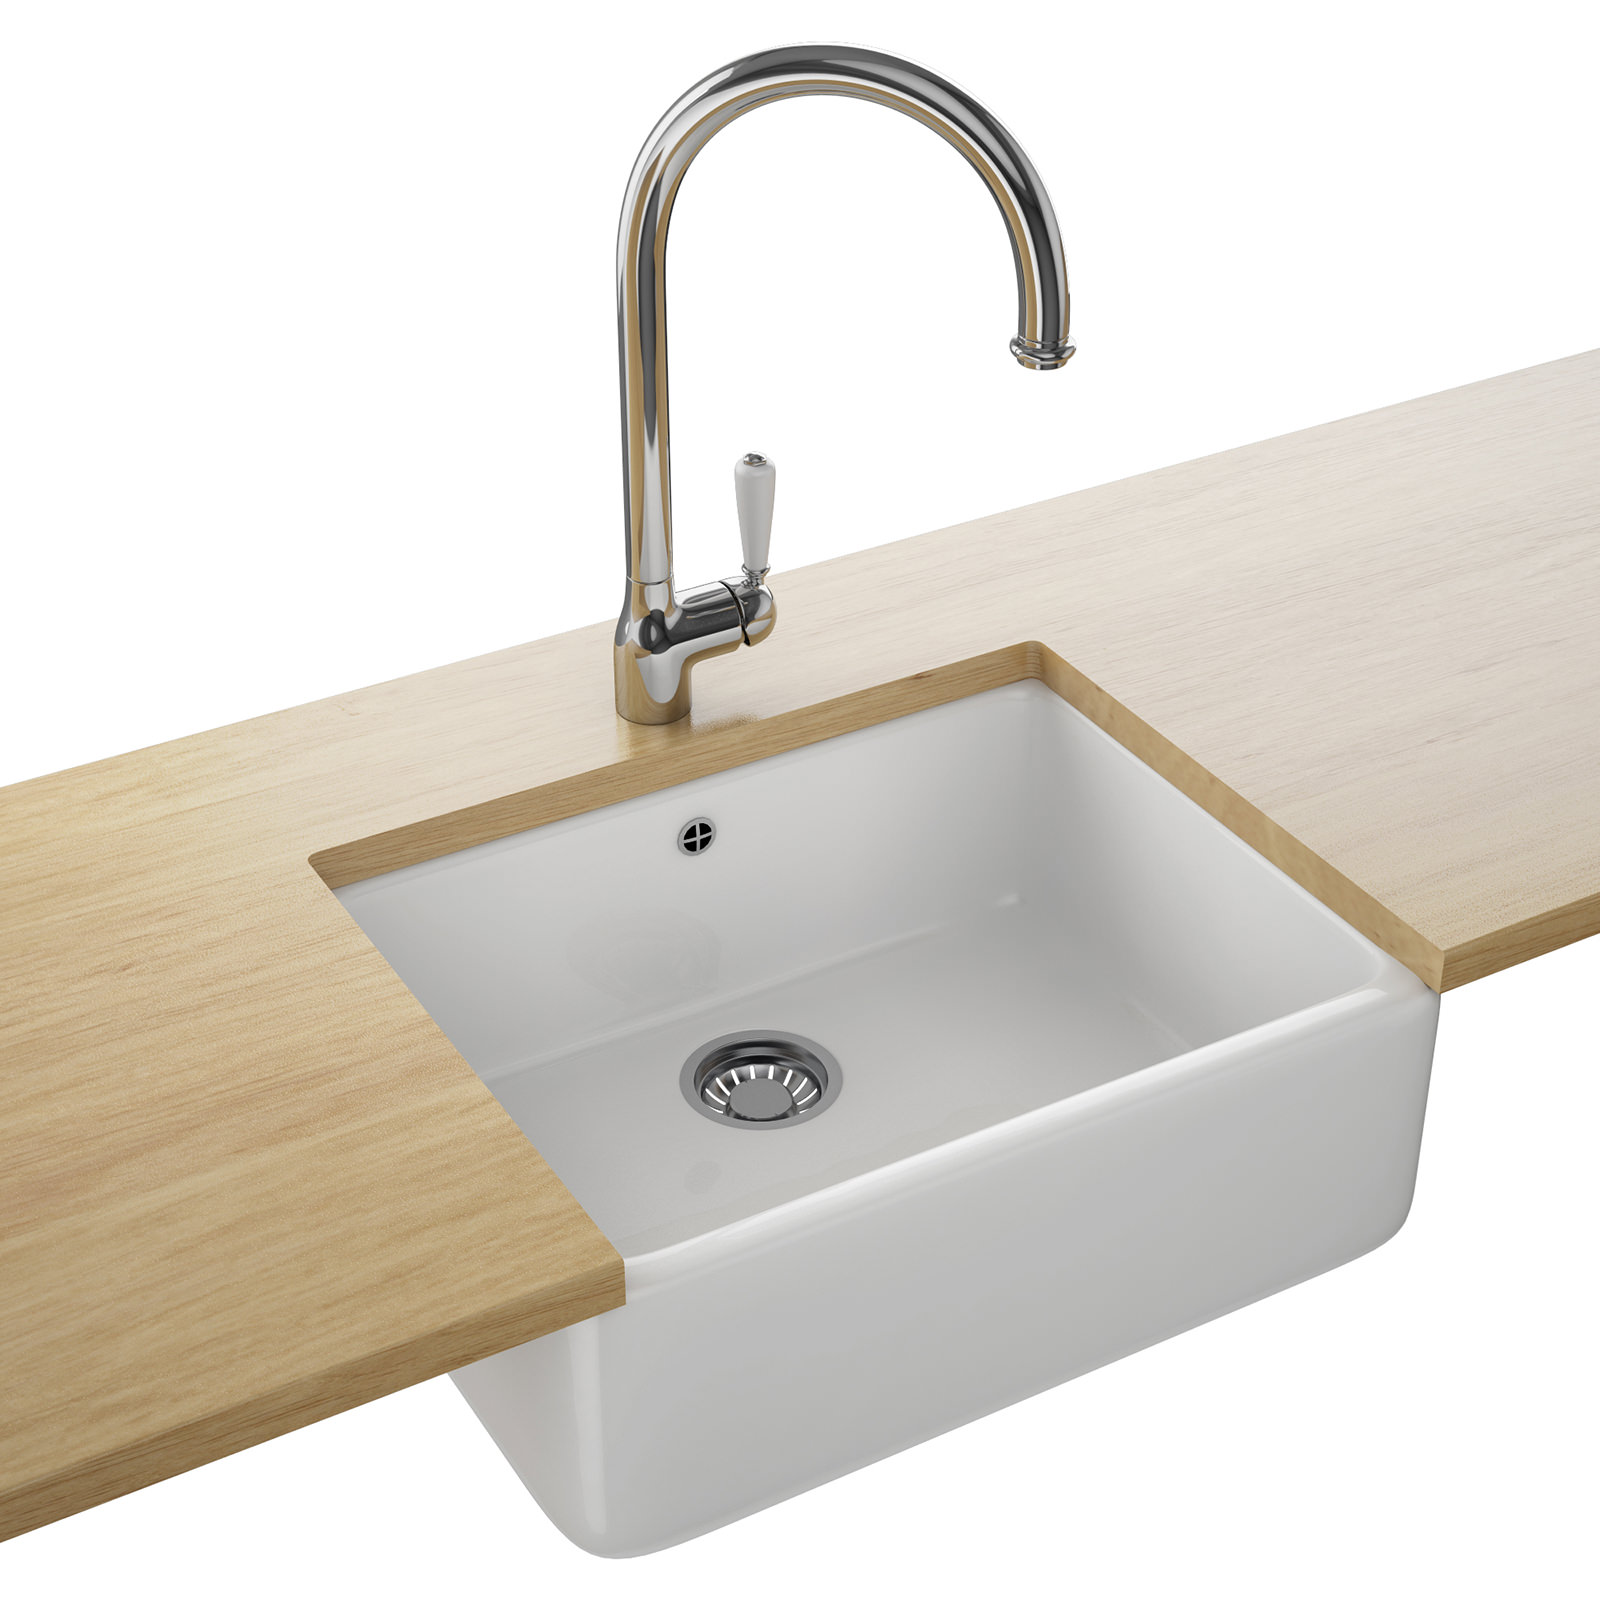 Franke belfast designer pack vbk 710 ceramic white kitchen sink and tap 130 0049 875